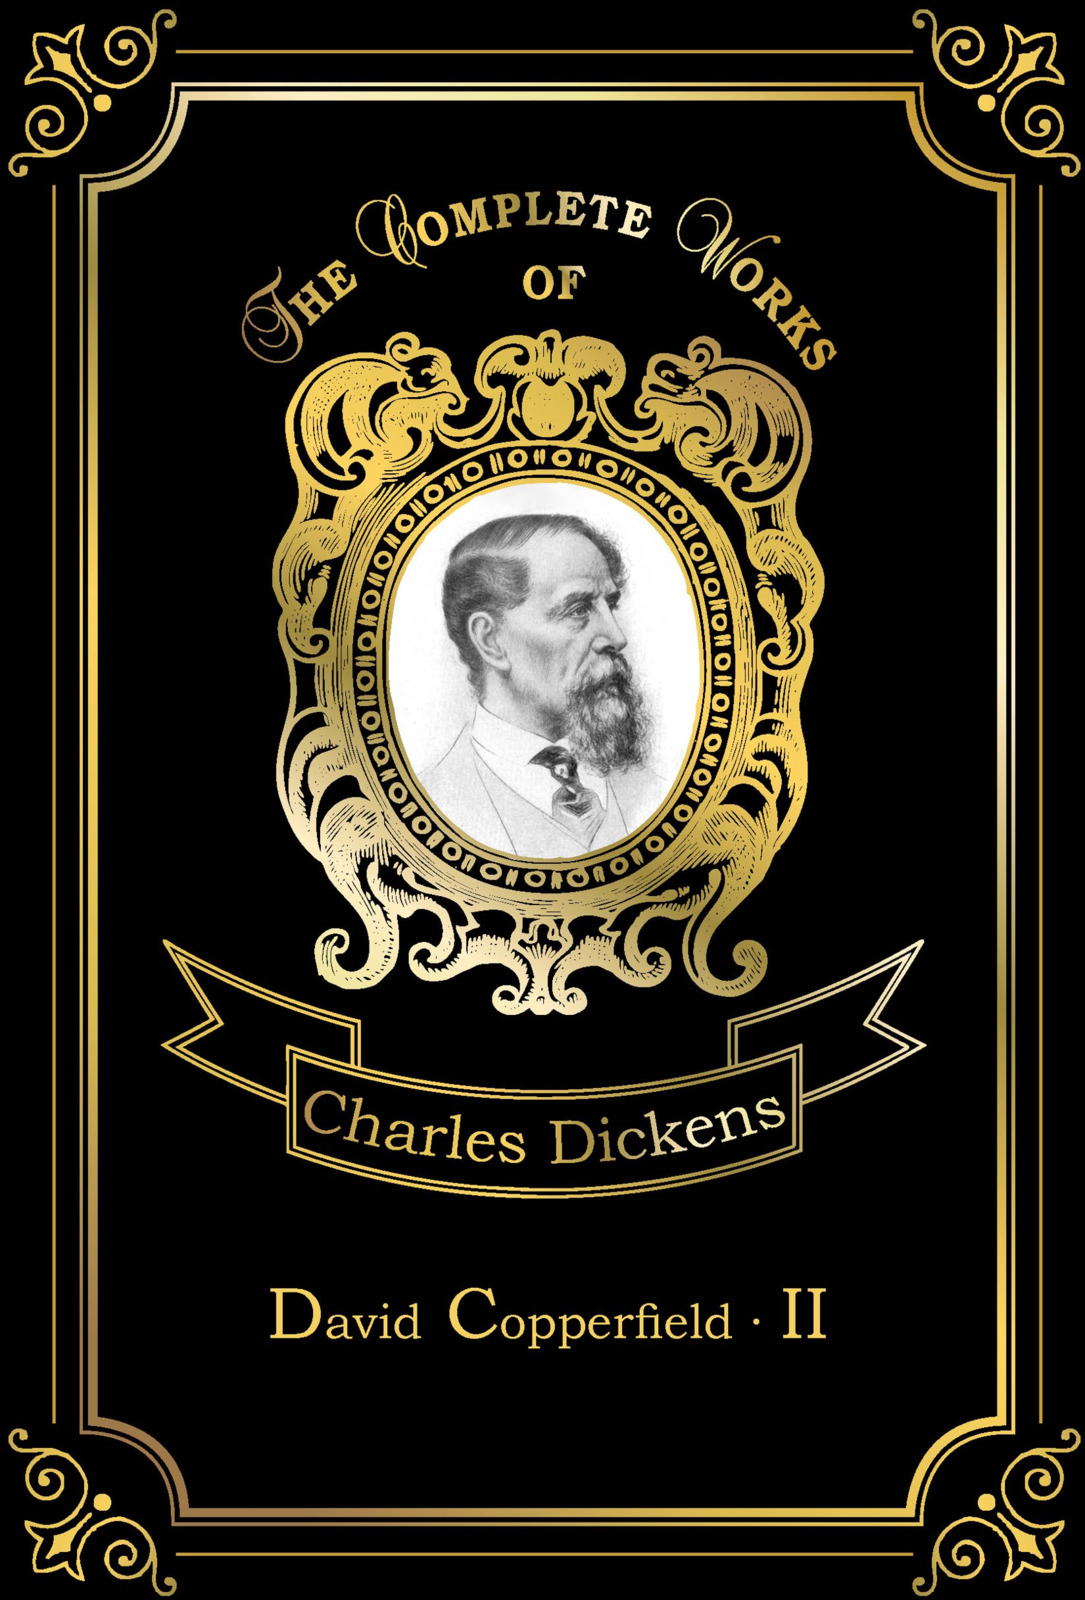 C. Dickens David Copperfield: Book 2 dickens charles david copperfield part 2 давид копперфильд ч 2